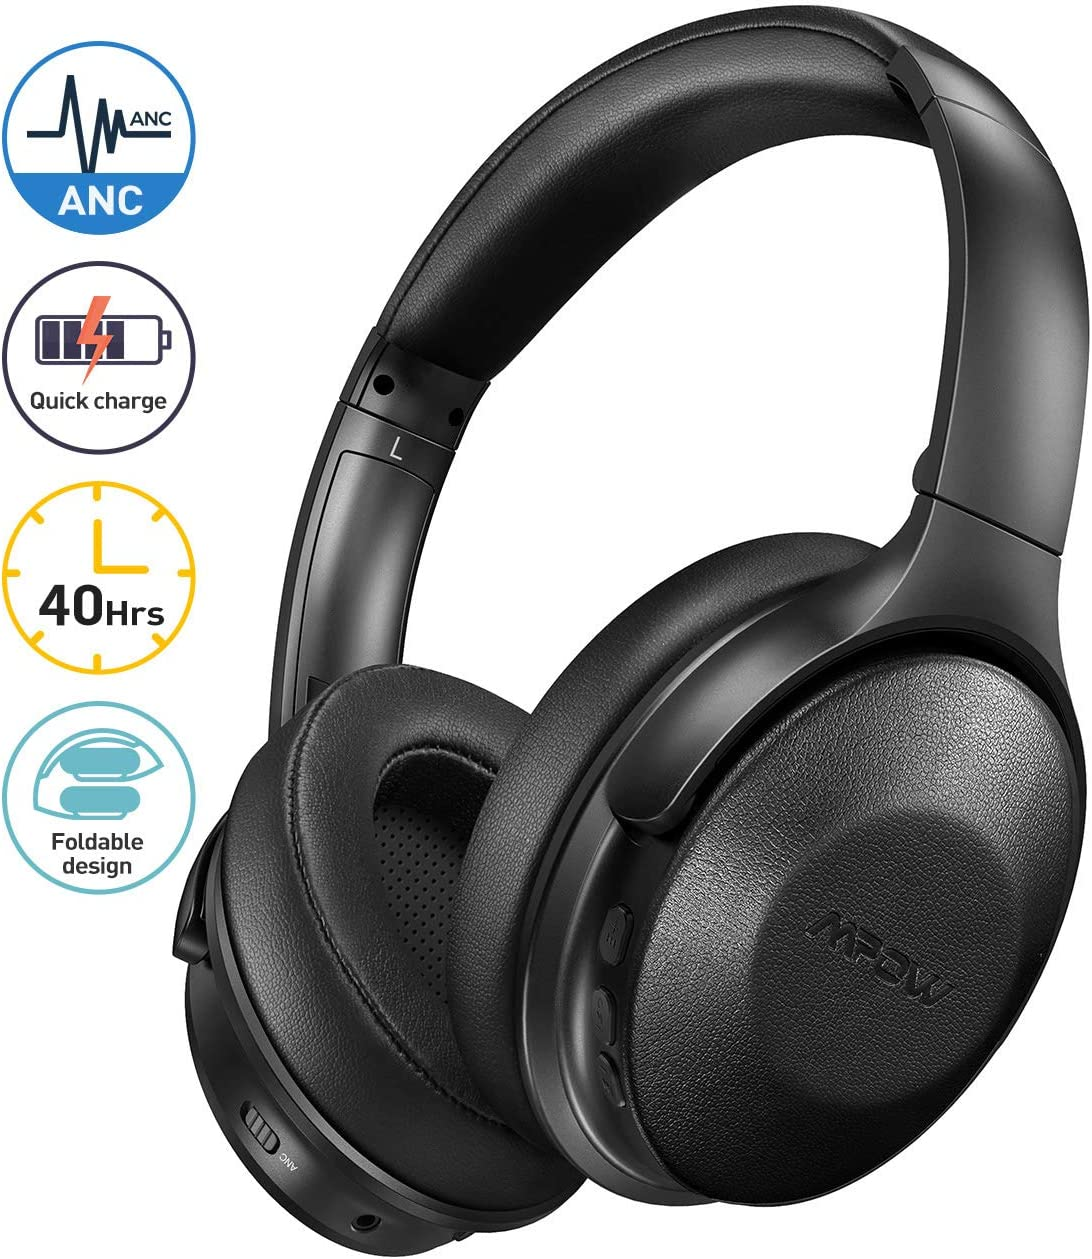 Mpow Active Noise Cancelling Headphones with Microphones, 2020 Version Bluetooth Headphones Over Ear with 40H Playtime, Quick Charge, Soft Protein Earpads, Deep Bass, for TV Travel Cellphone PC